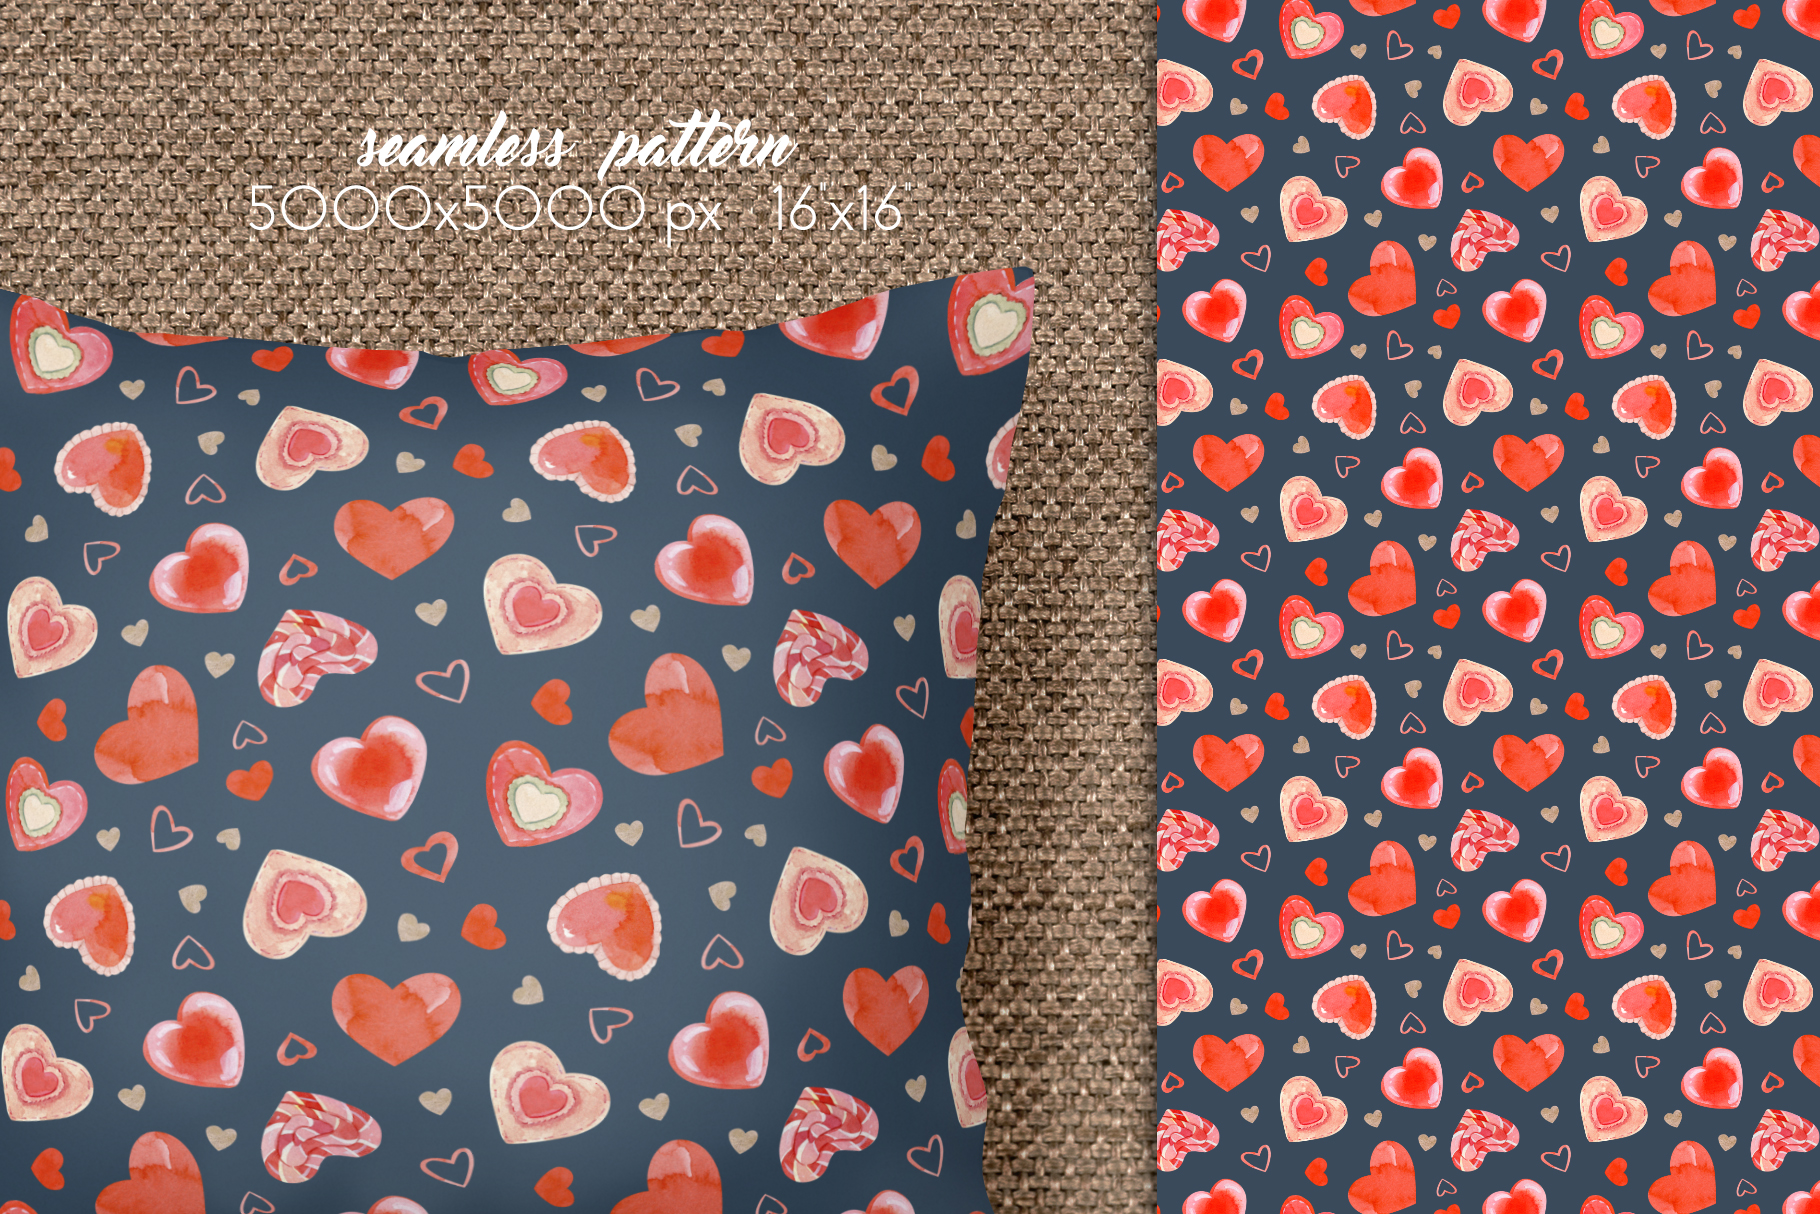 Valentines Day Seamless Patterns example image 9